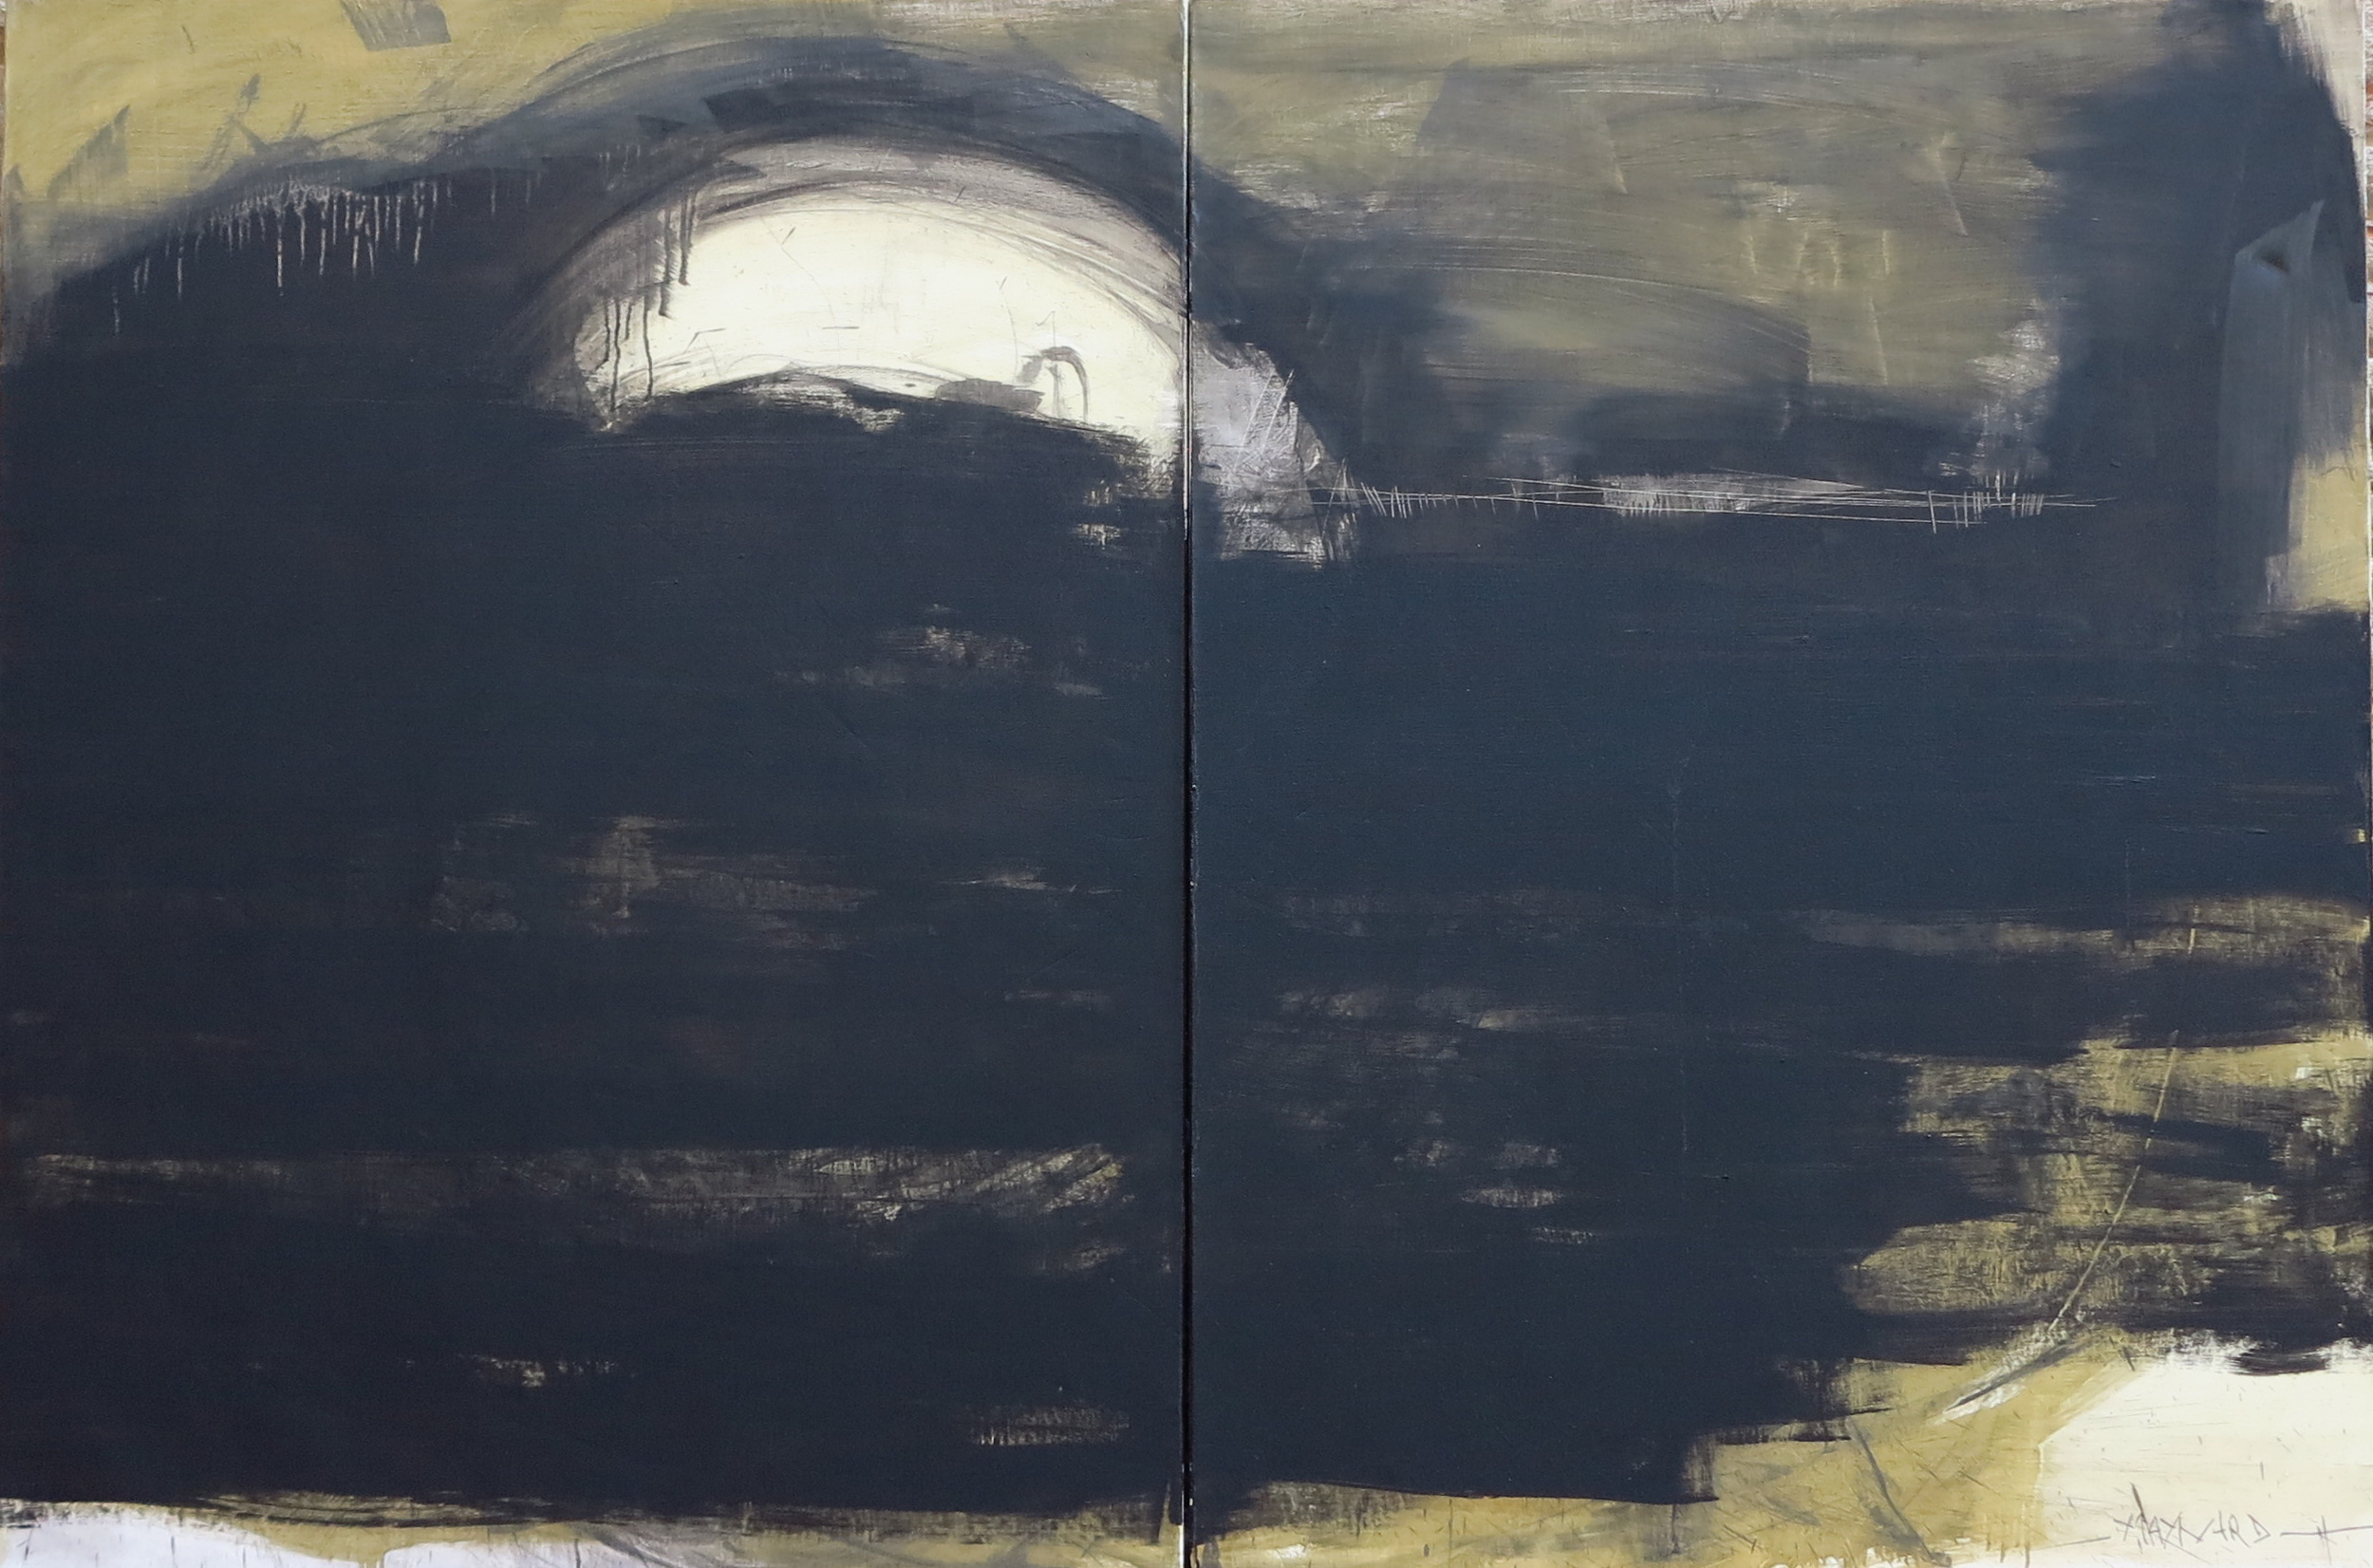 Diptych oil on canvas - size 200 x 130 cm / 79 x 51 inches